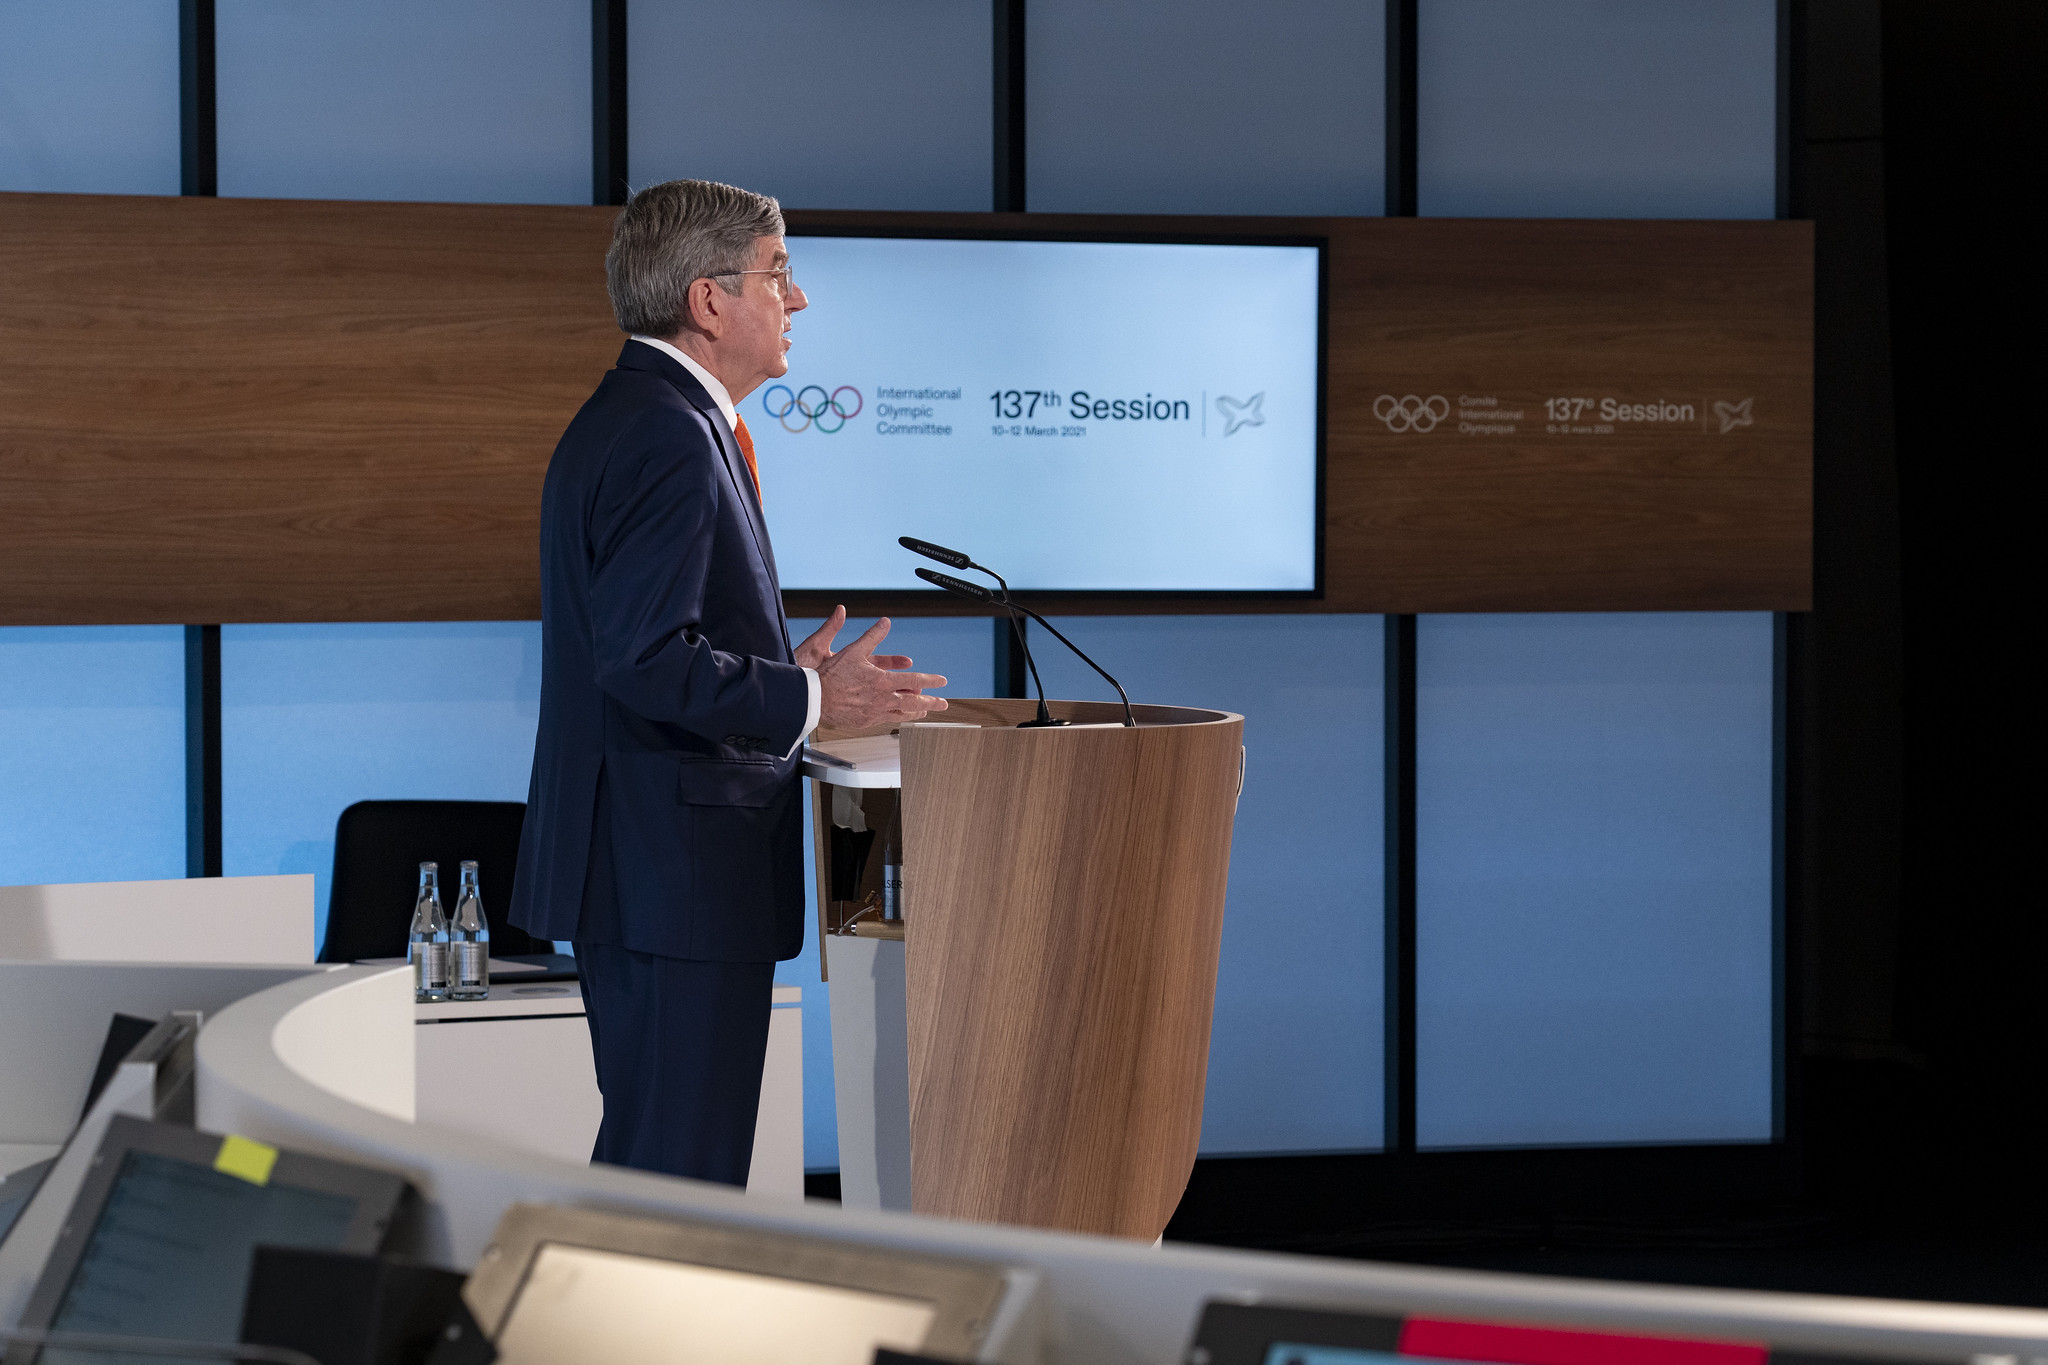 137th International Olympic Committee Session: Day three